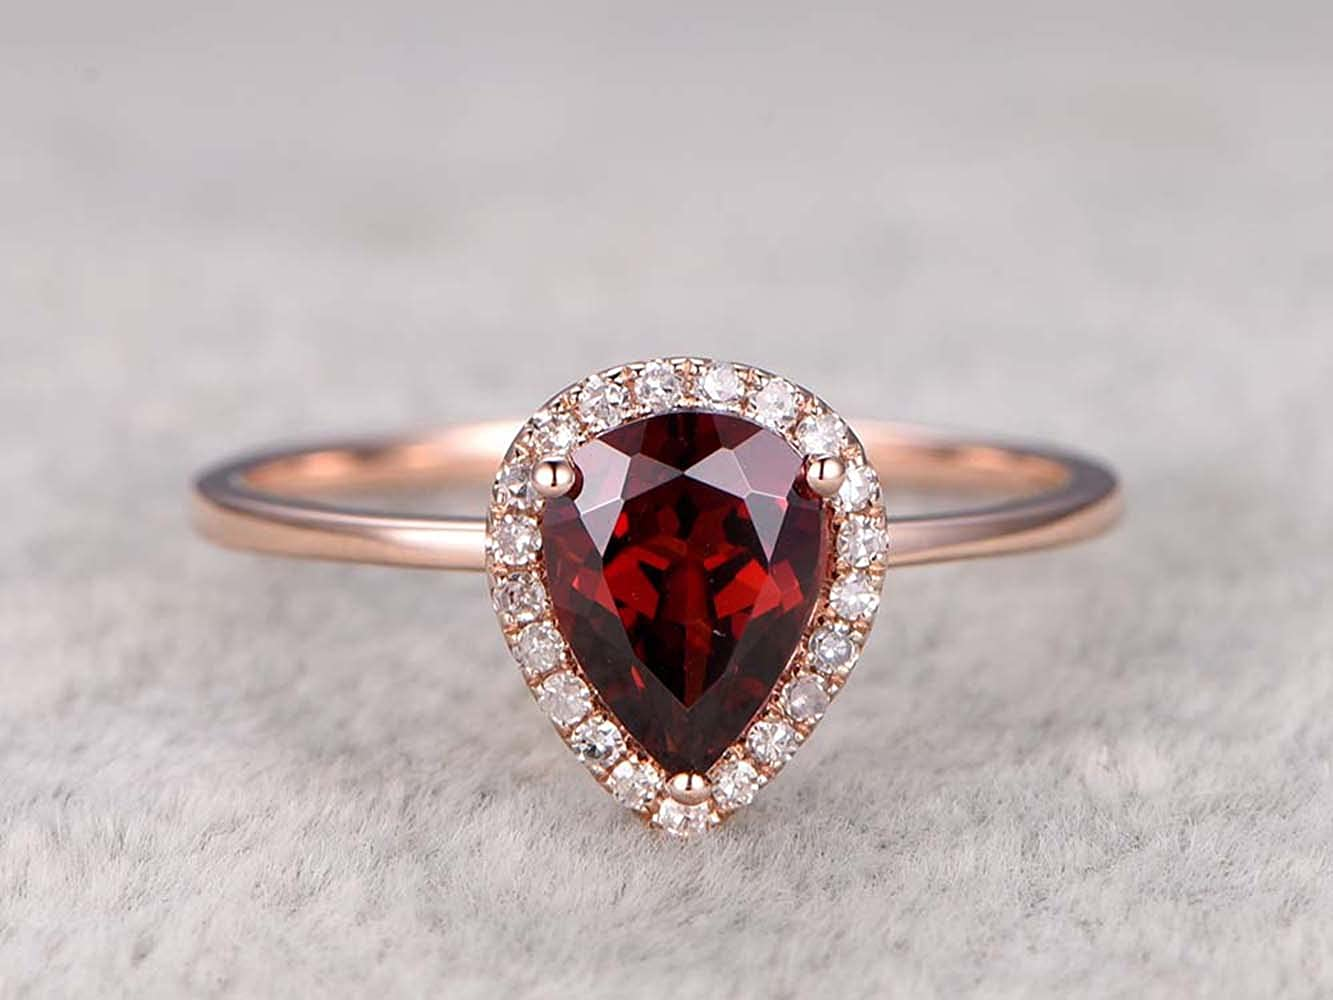 RUDRAFASHION 6x8mm Pear Cut Red Garnet /& Diamond 14k Rose Gold Plated Engagement Halo Ring for Womens